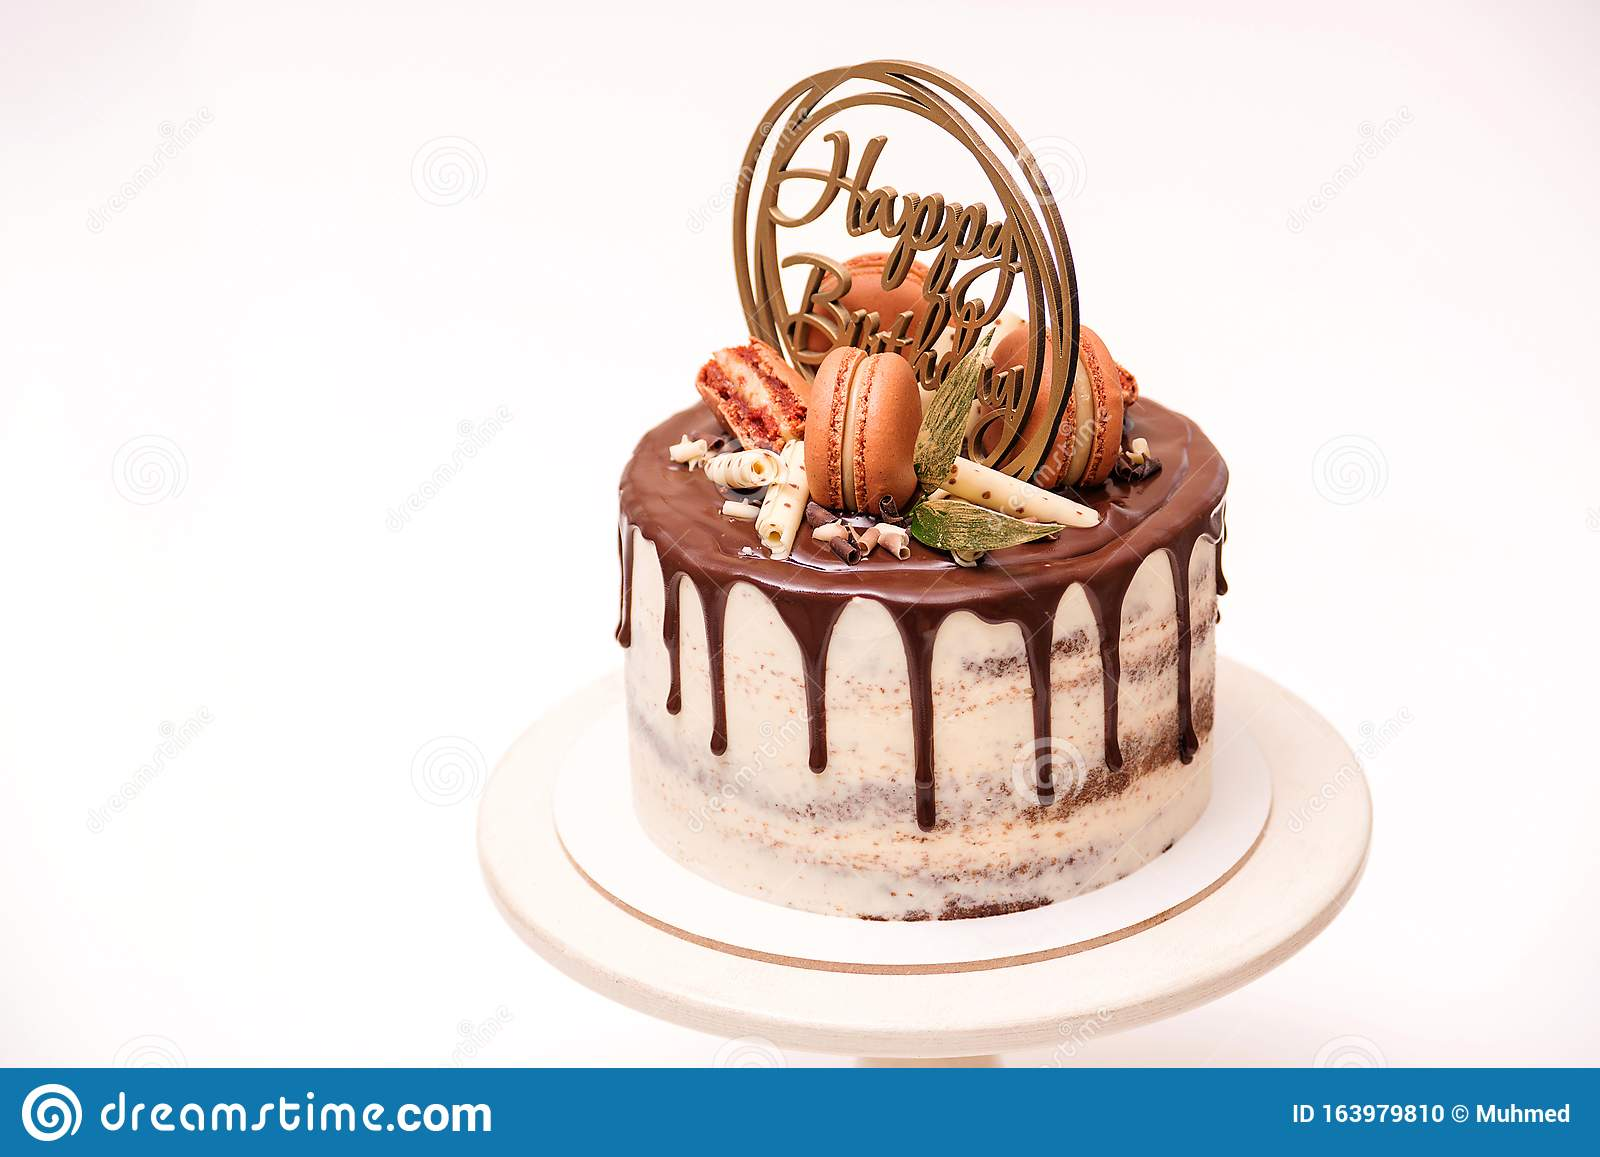 Terrific Birthday Cake Decorated With Golden Macaroons And Chocolate Pieces Funny Birthday Cards Online Alyptdamsfinfo